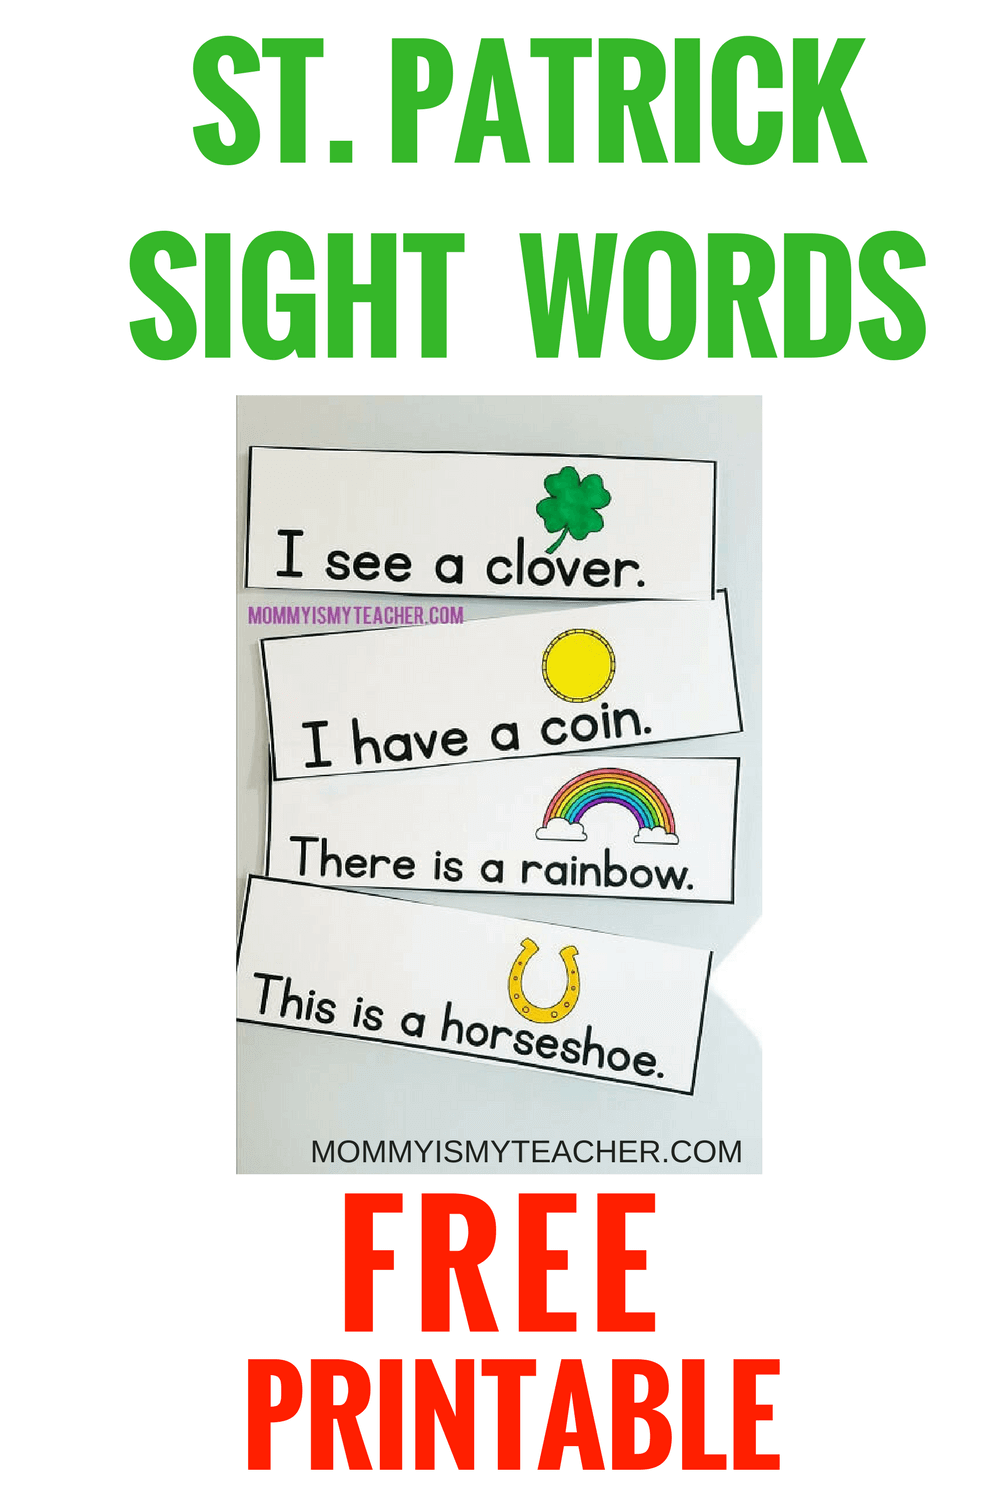 ST PATRICK DAY FREE PRINTABLE.png